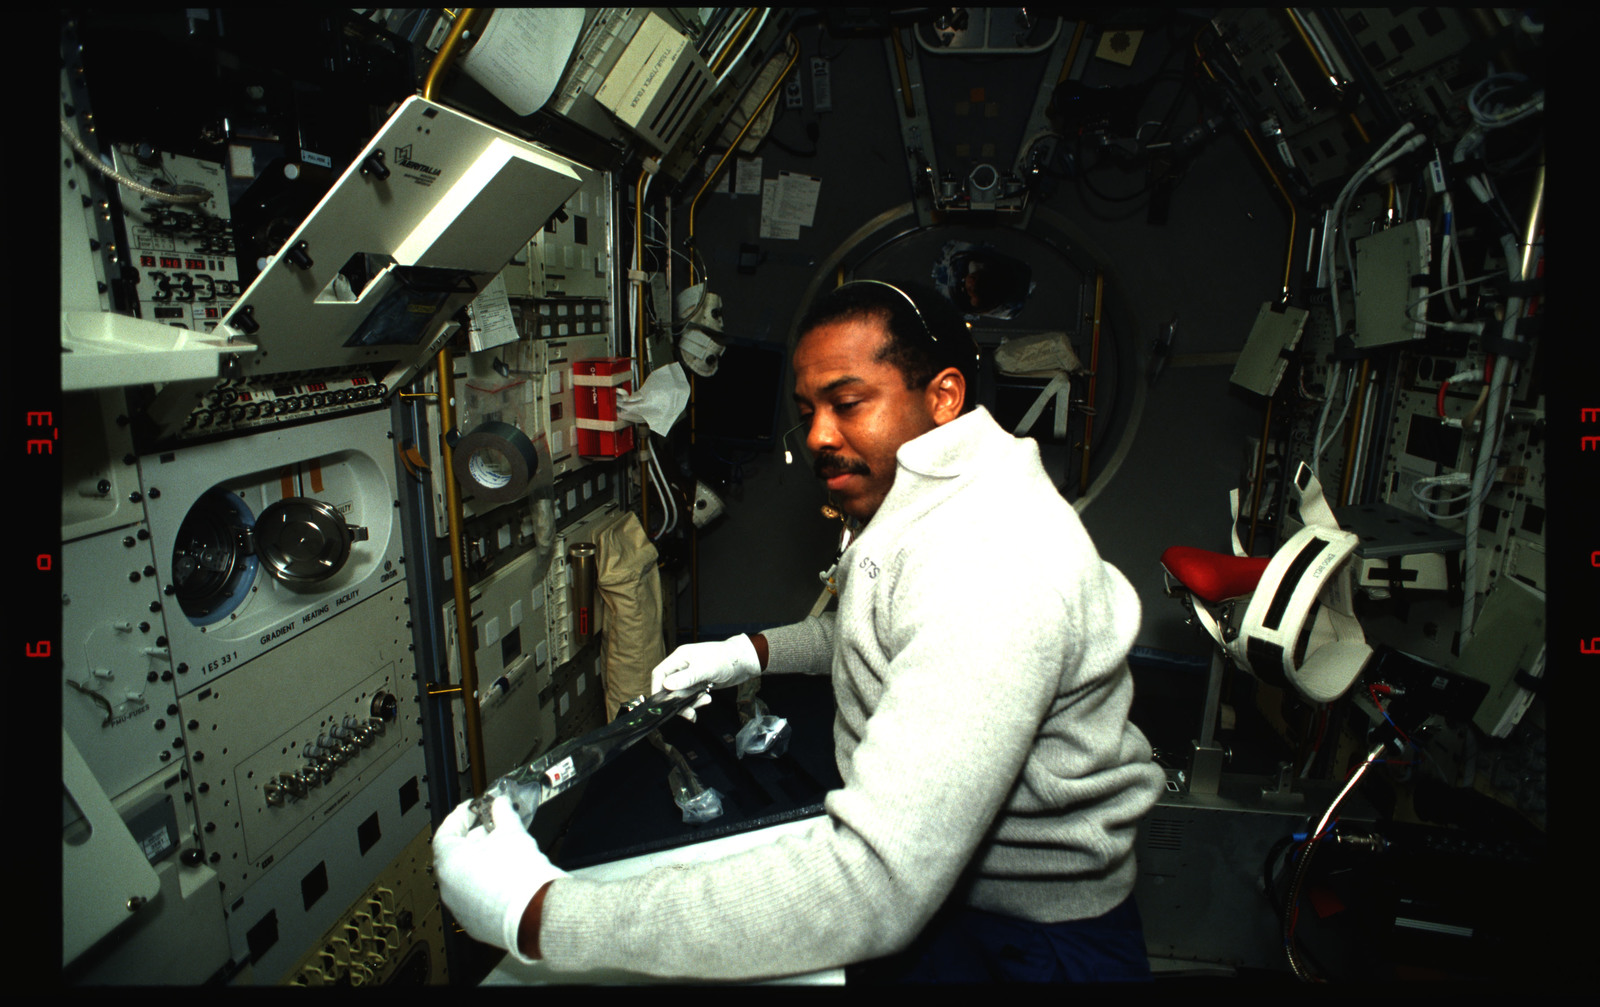 STS055-13-029 - STS-055 - Crewmember at Work in the Spacelab at the Material Sciences Laboratory